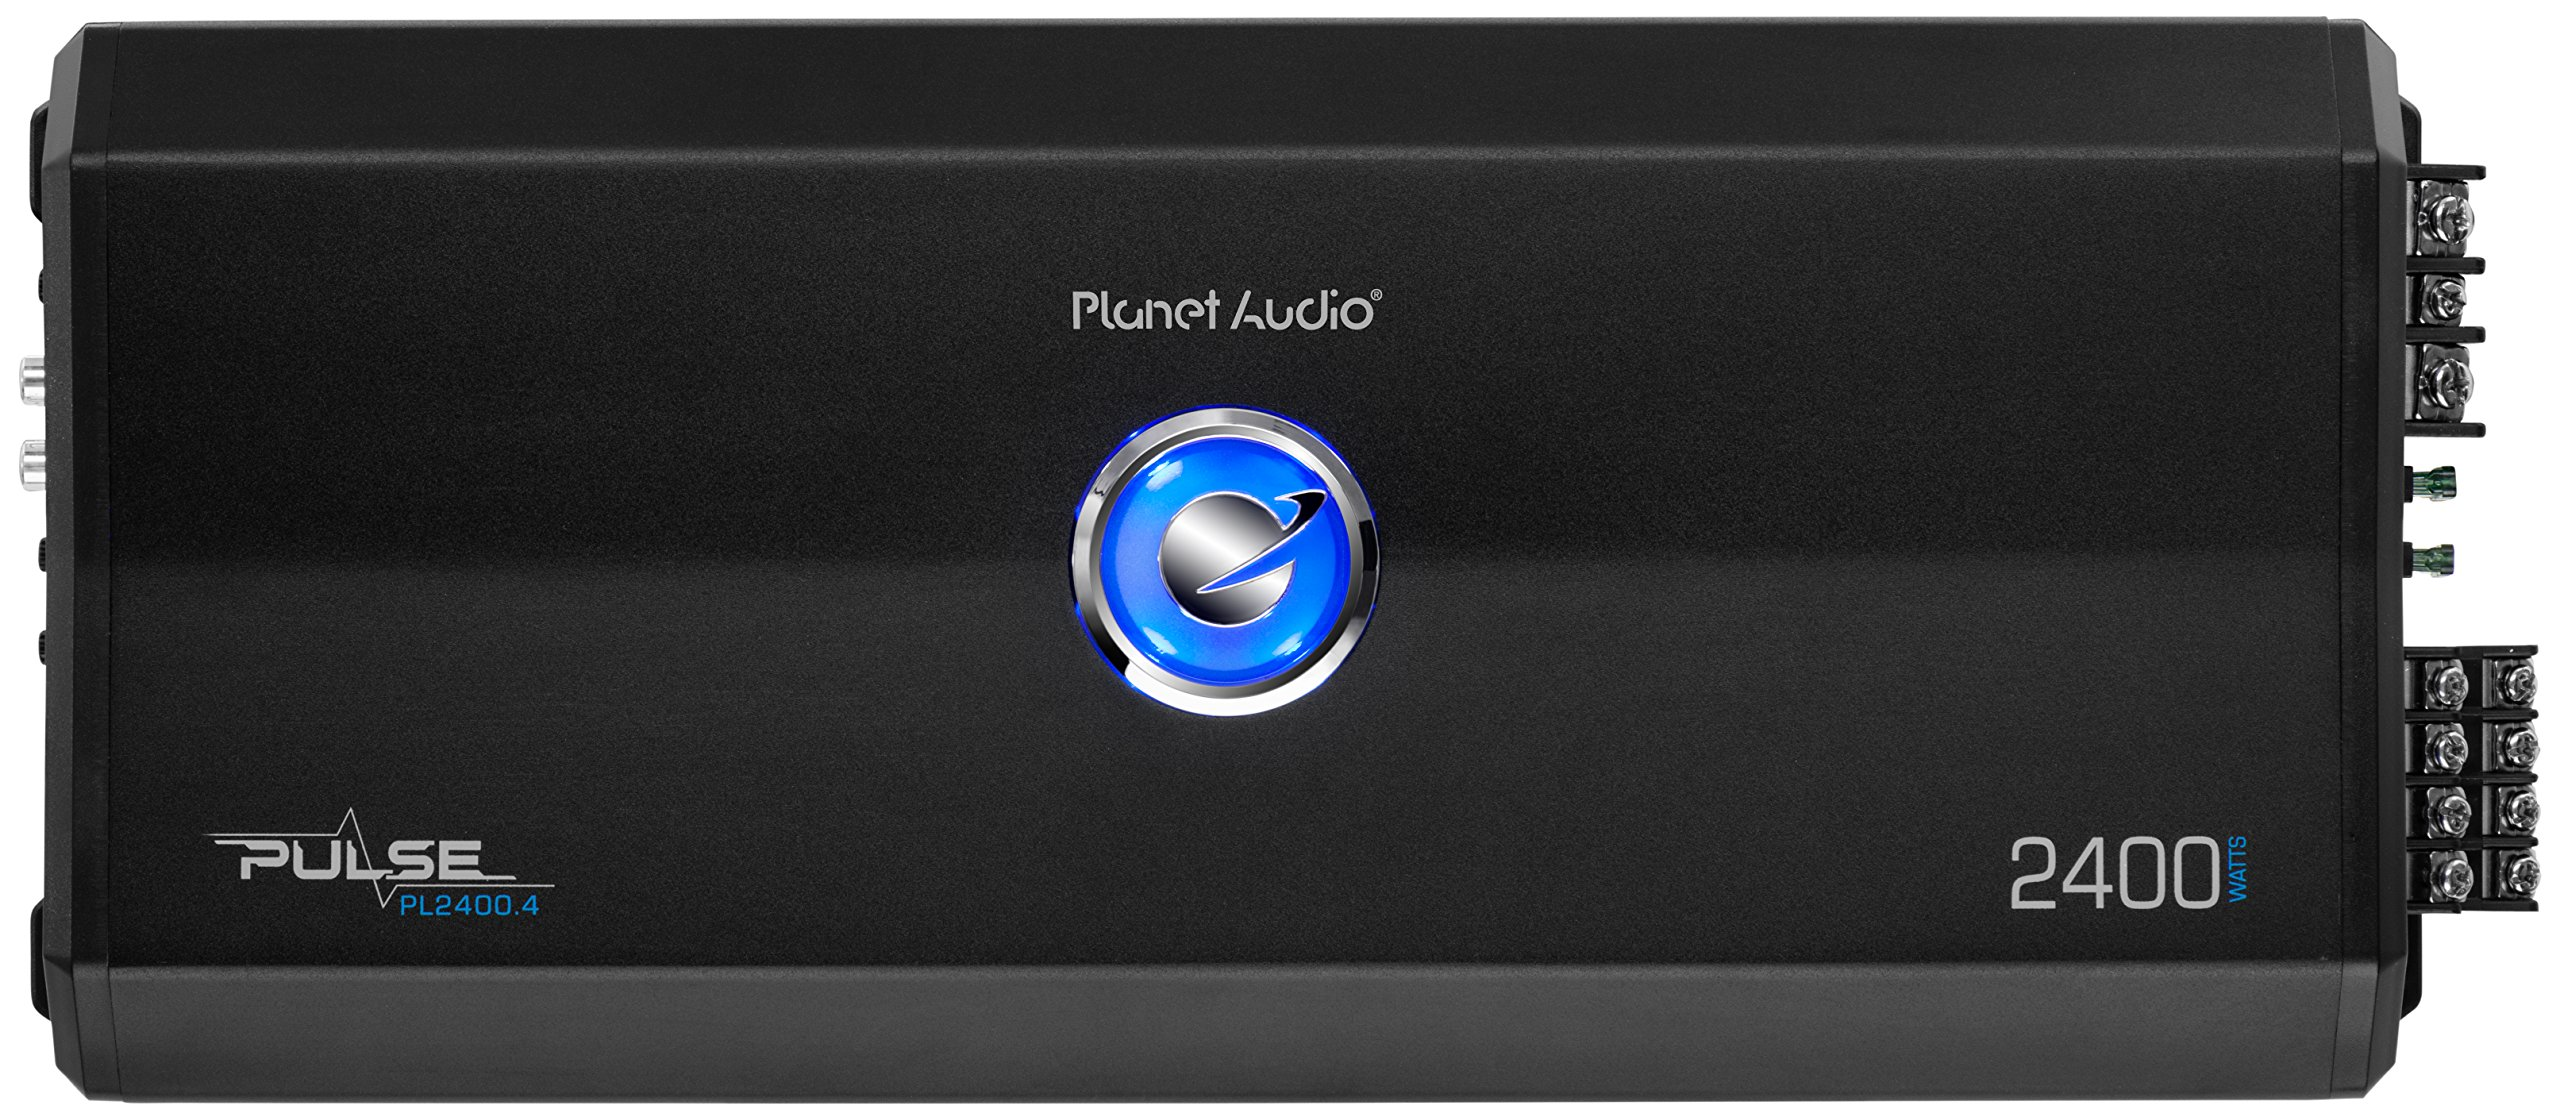 Planet Audio PL2400.4 Pulse 2400 Watt, 4 Channel, 2 to 8 Ohm Stable Class A/B, Full Range, Bridgeable, MOSFET Car Amplifier with Remote Subwoofer Control